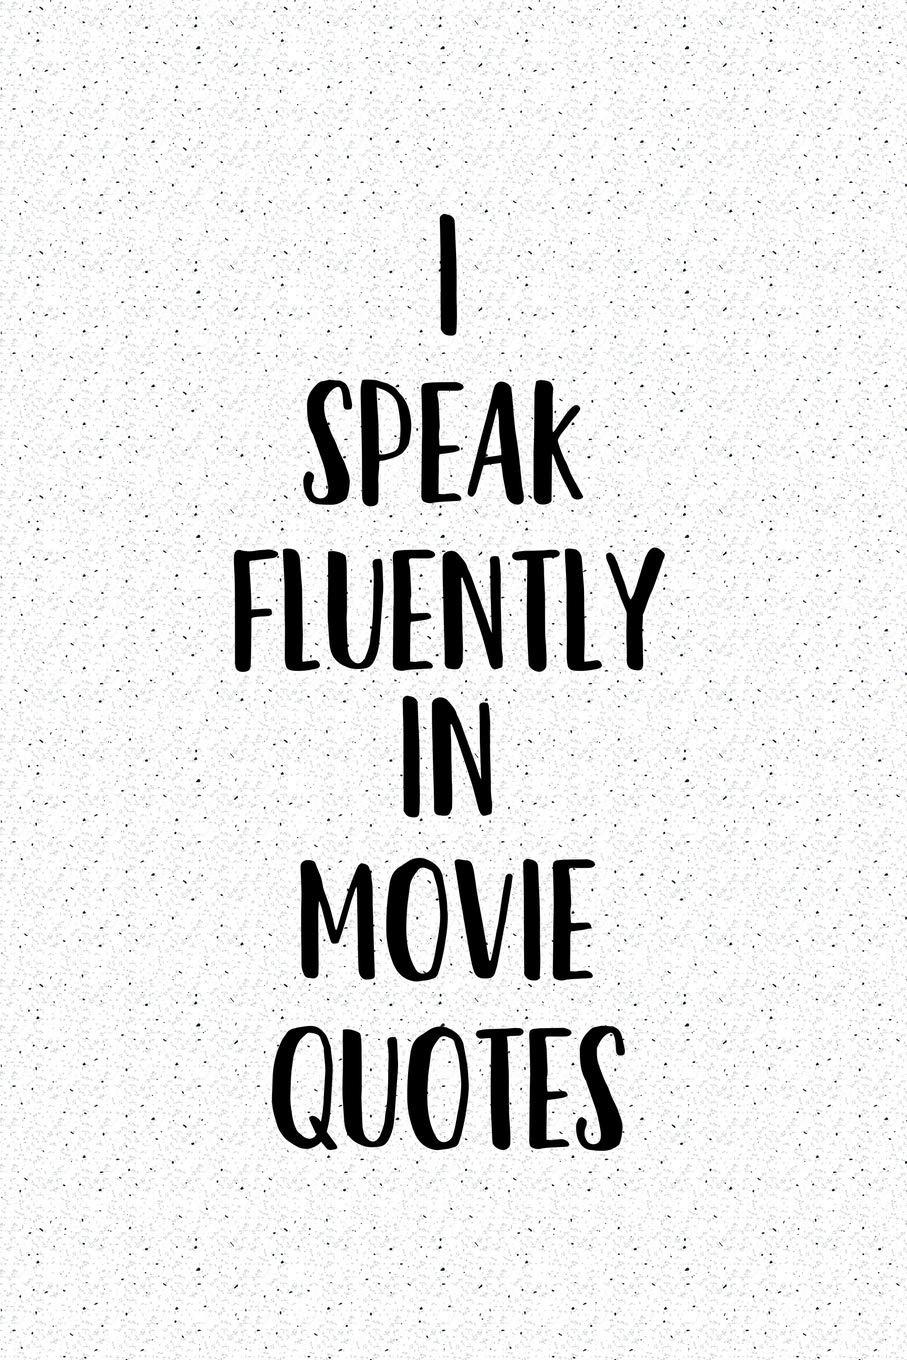 I Speak Fluently in Movie Quotes: A 6x9 Inch Matte Softcover